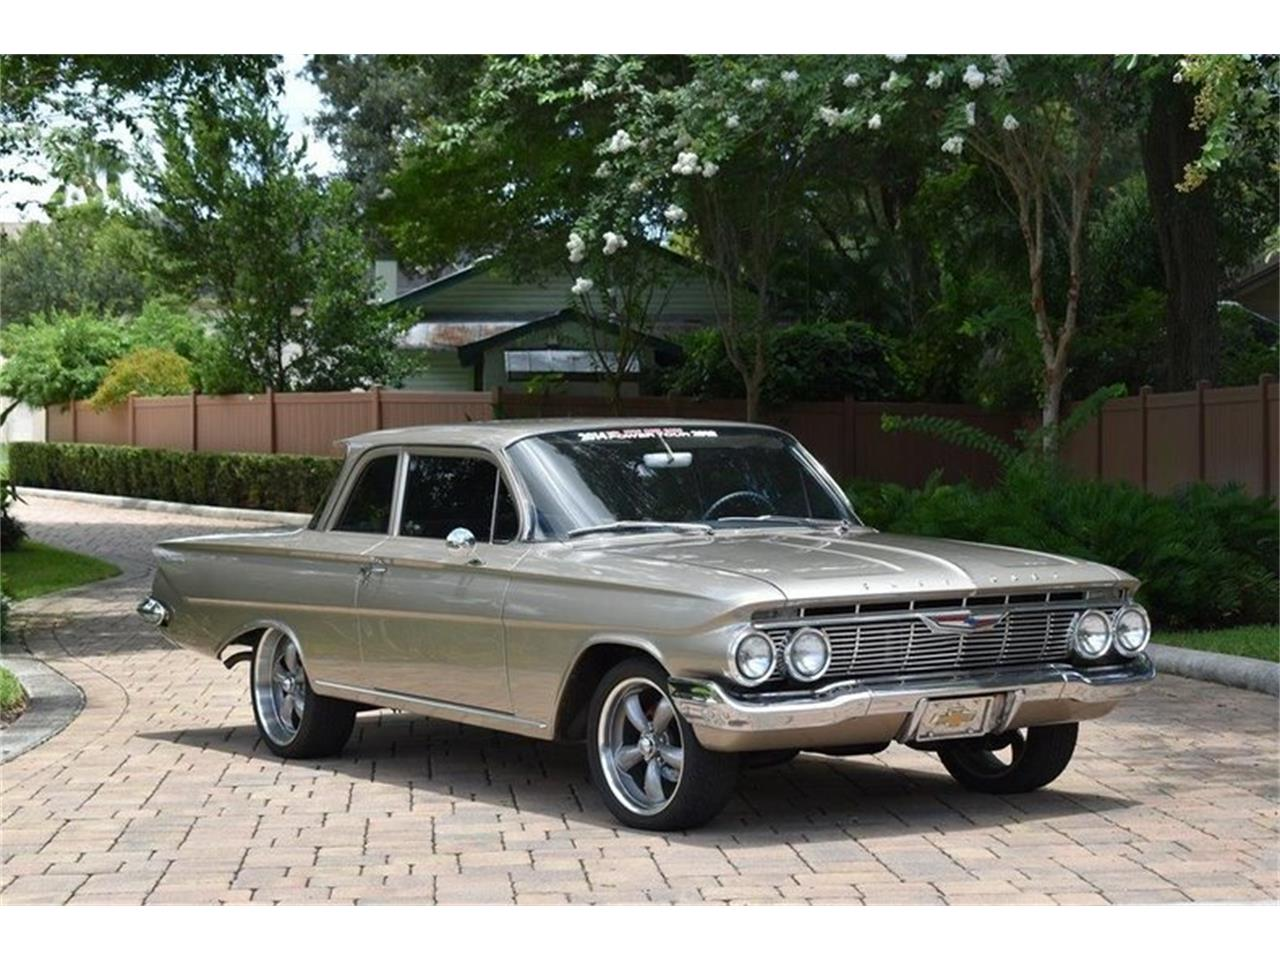 1961 Chevrolet Biscayne (CC-1384775) for sale in Lakeland, Florida